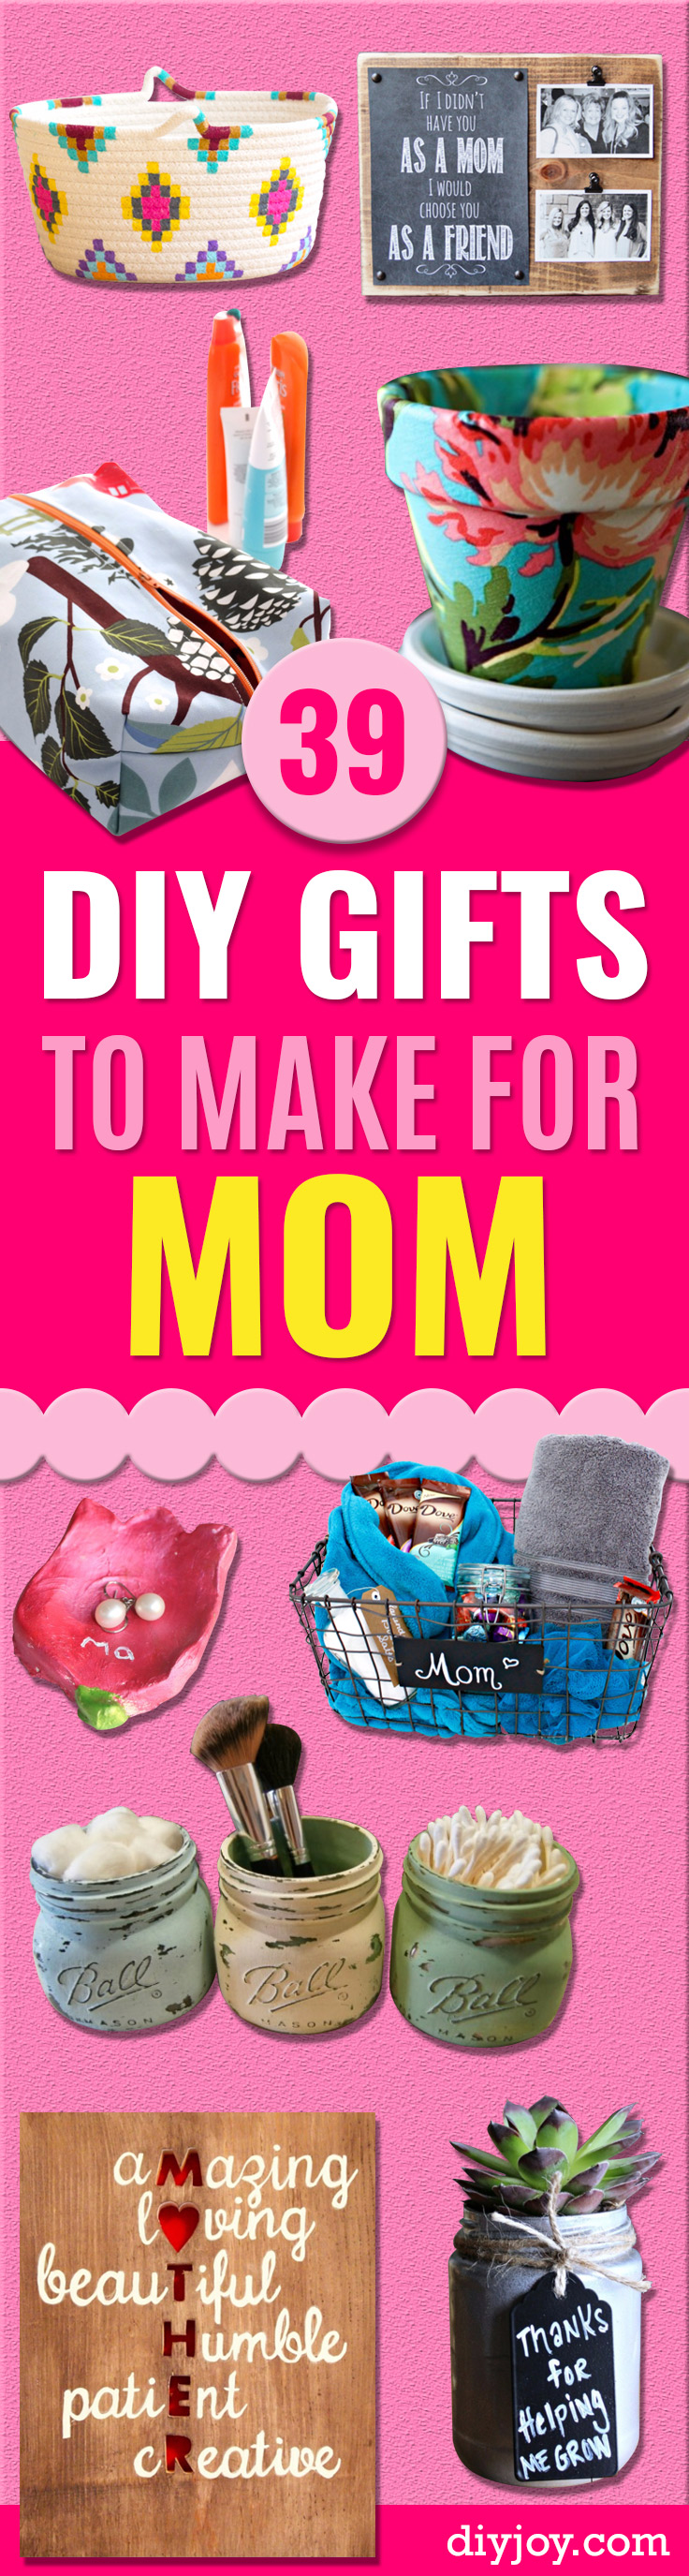 39 creative diy gifts to make for mom page 2 of 8 diy joy Christmas ideas for your mom